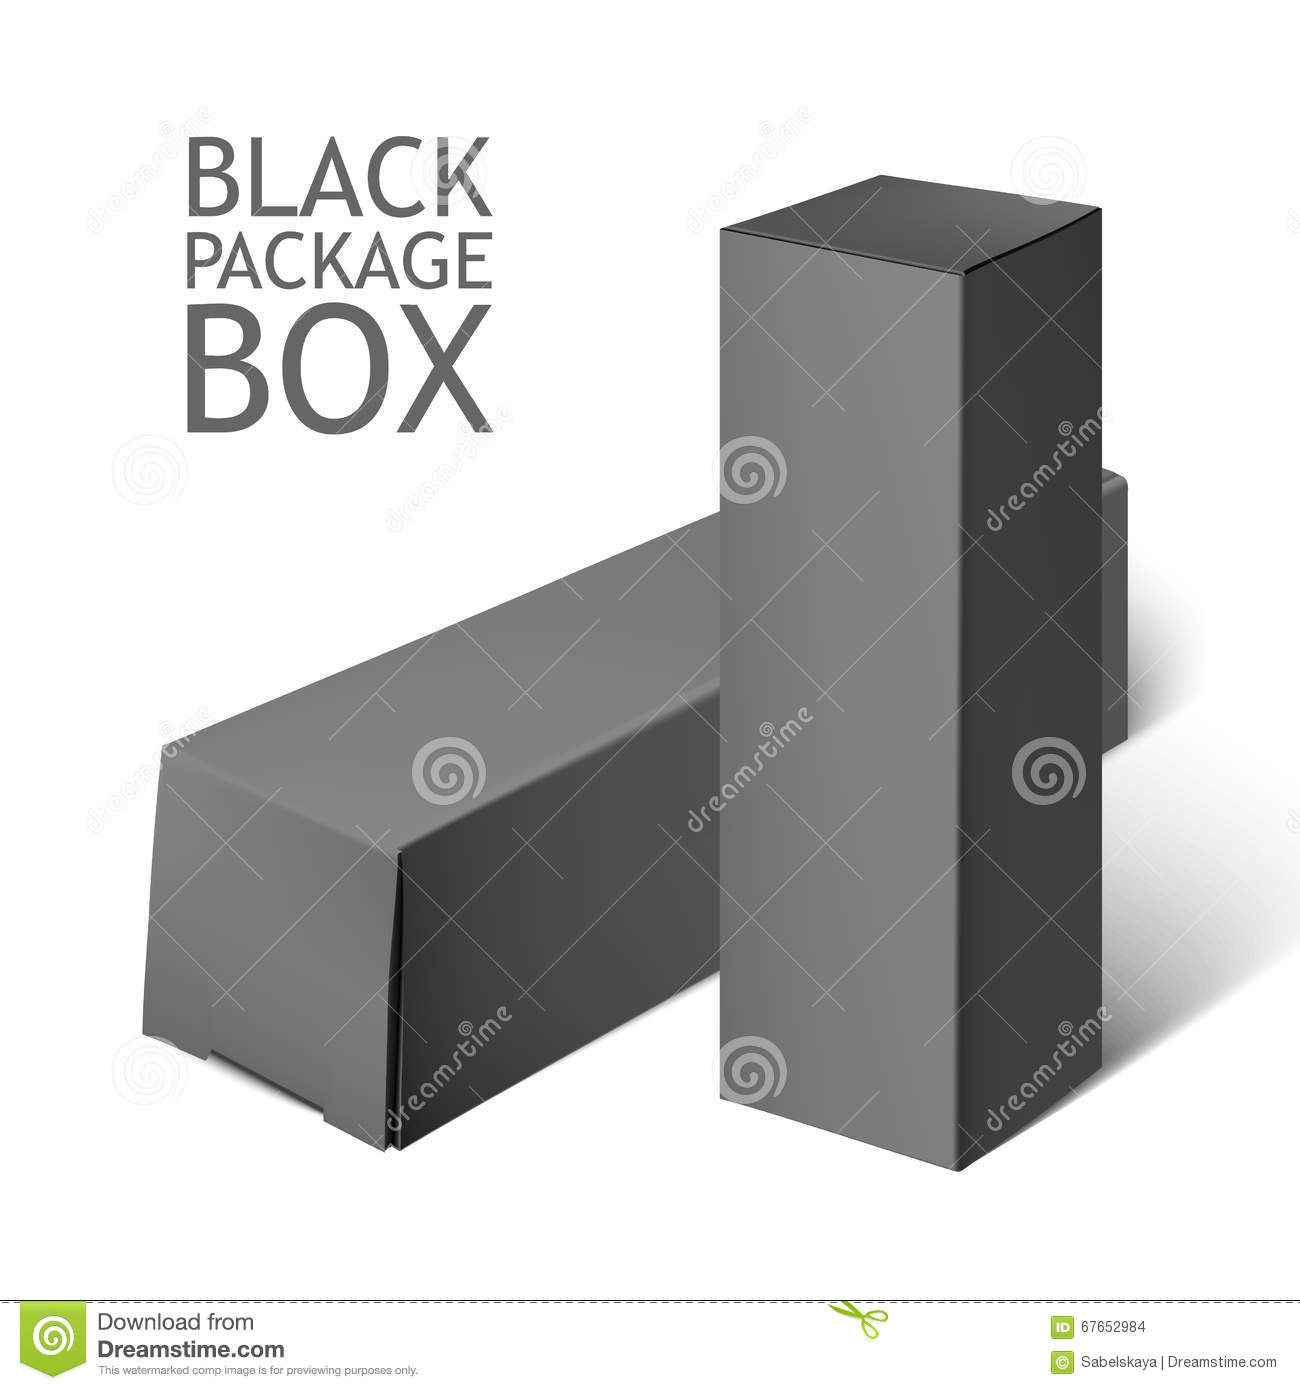 Black Package Box Mockup Template Stock Illustrations – 797 Black ...